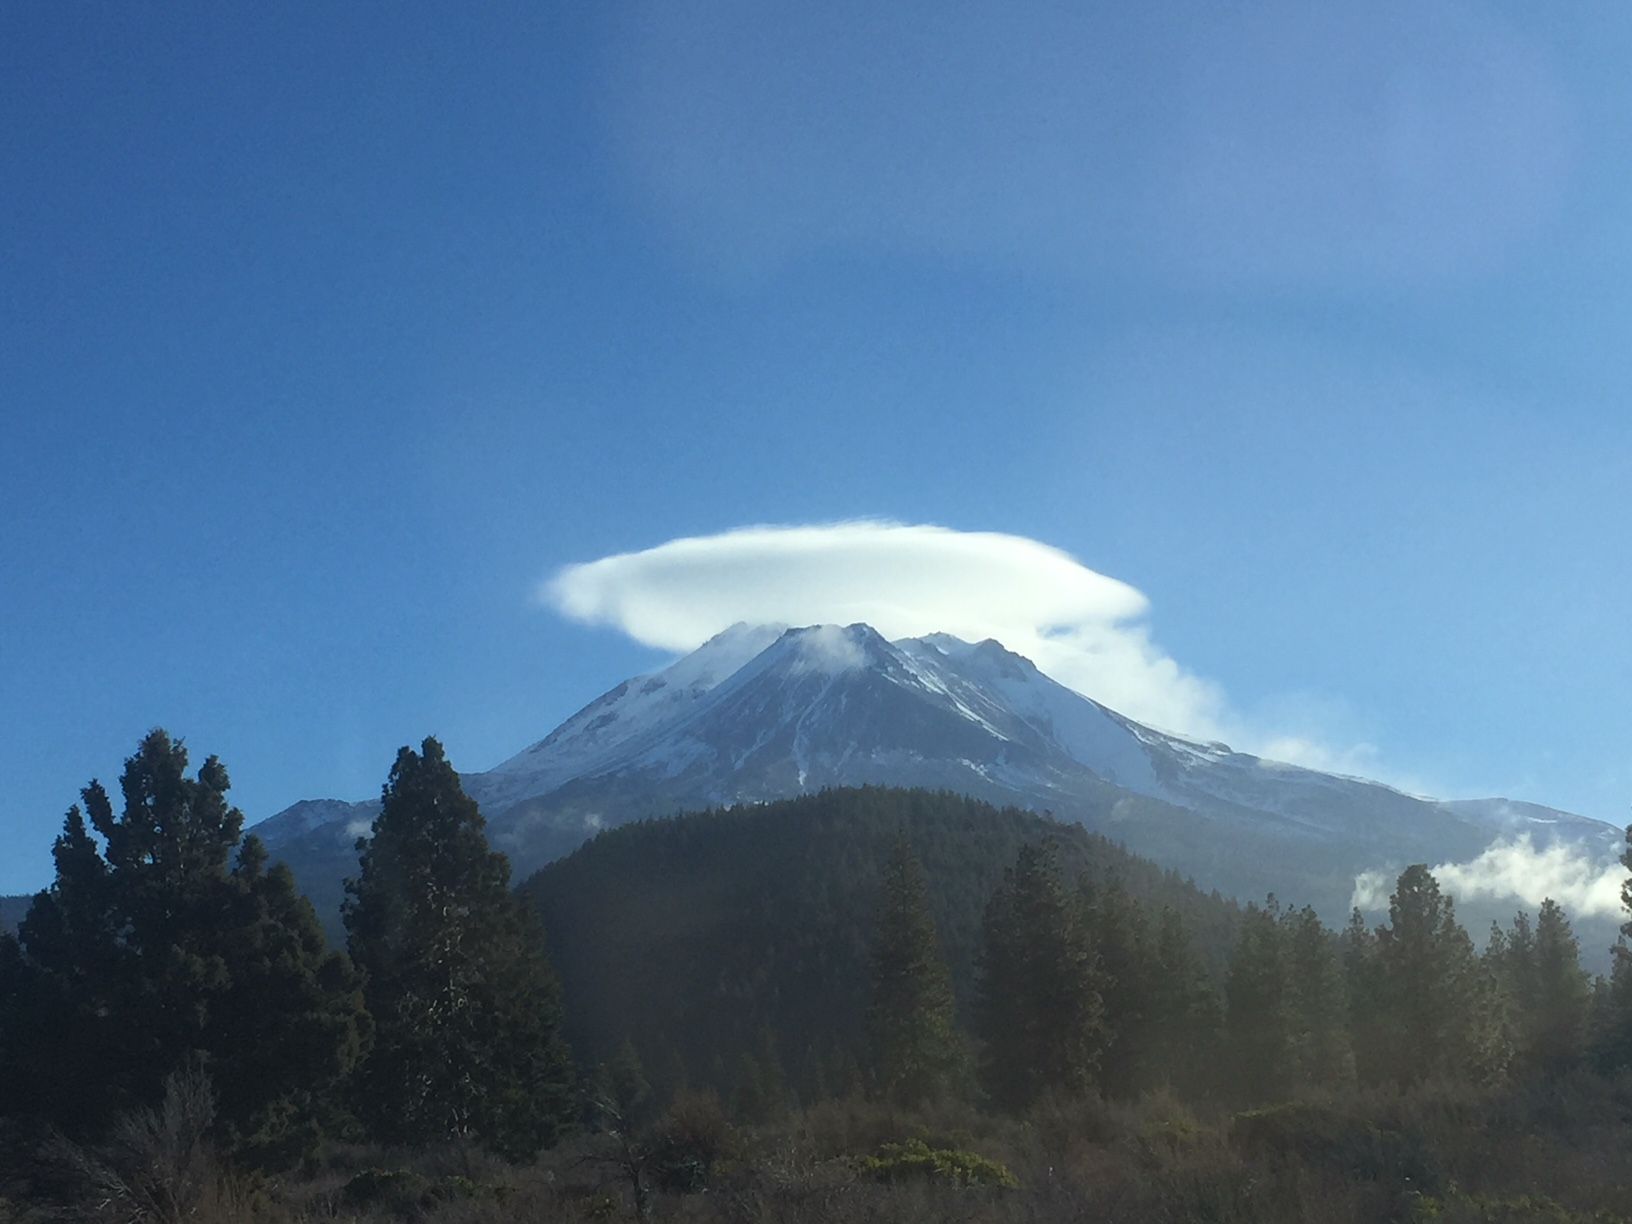 Mount Shasta, California United States